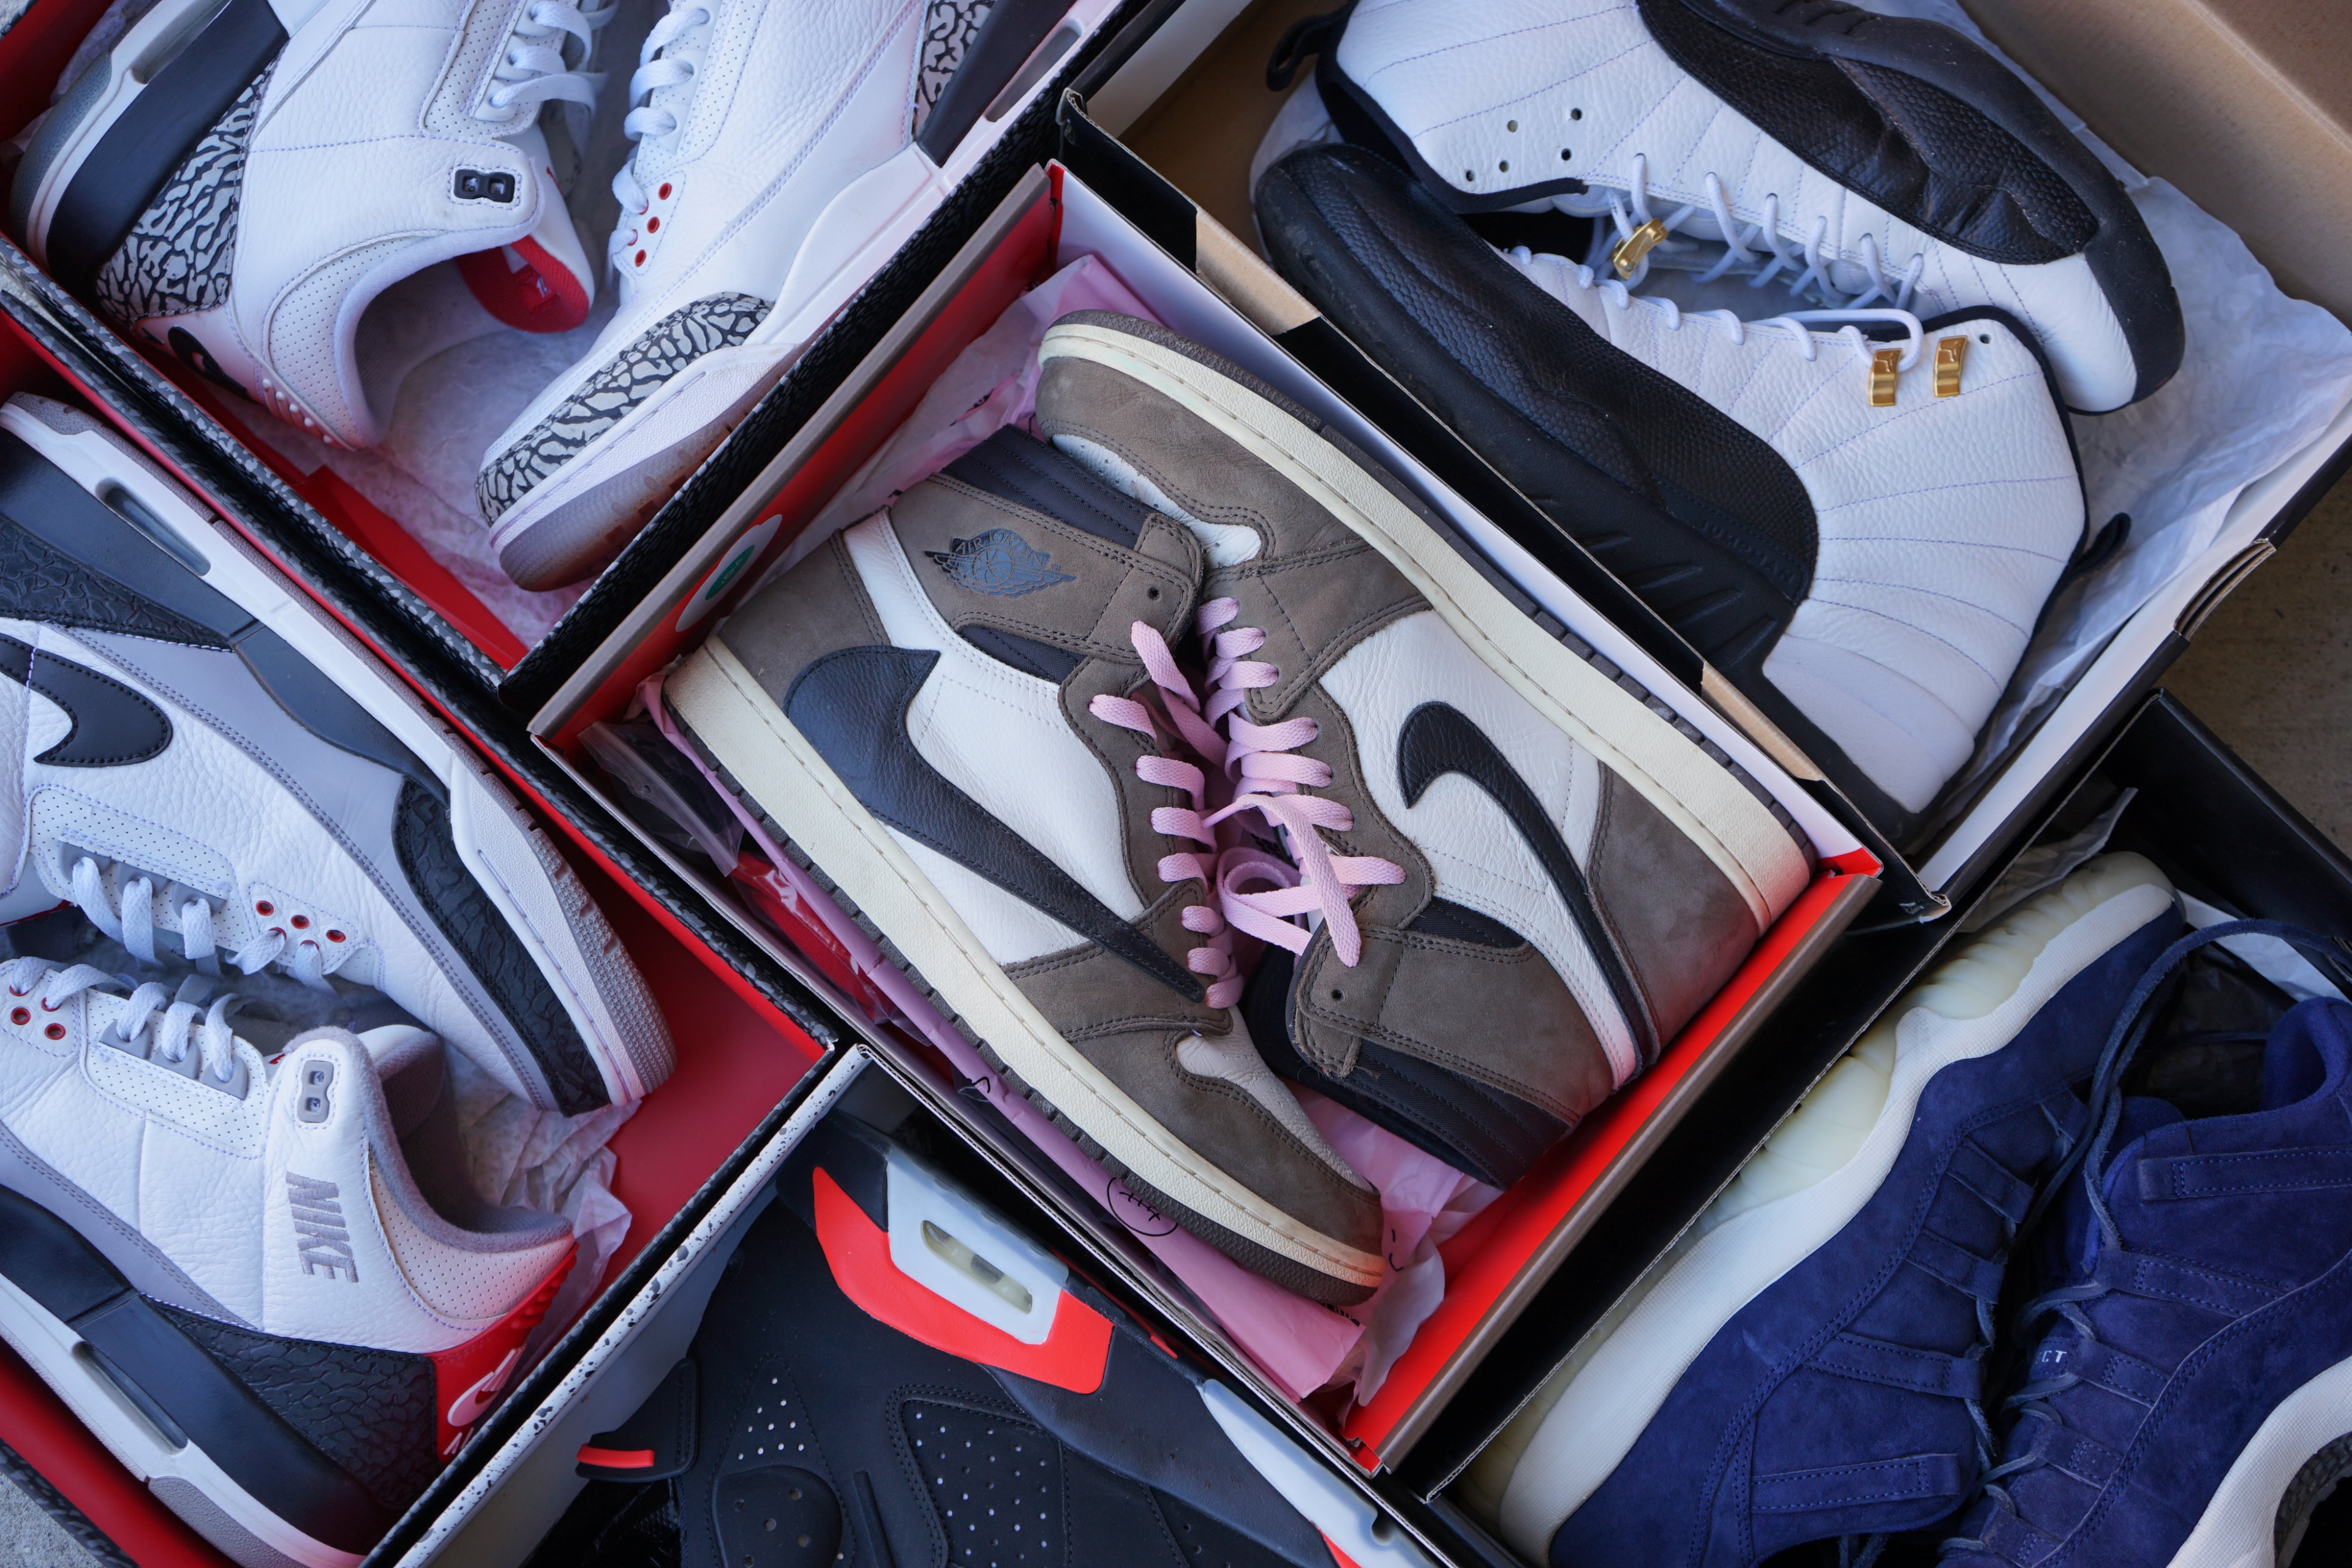 Where can I buy authentic Nike and Jordan shoes wholesale